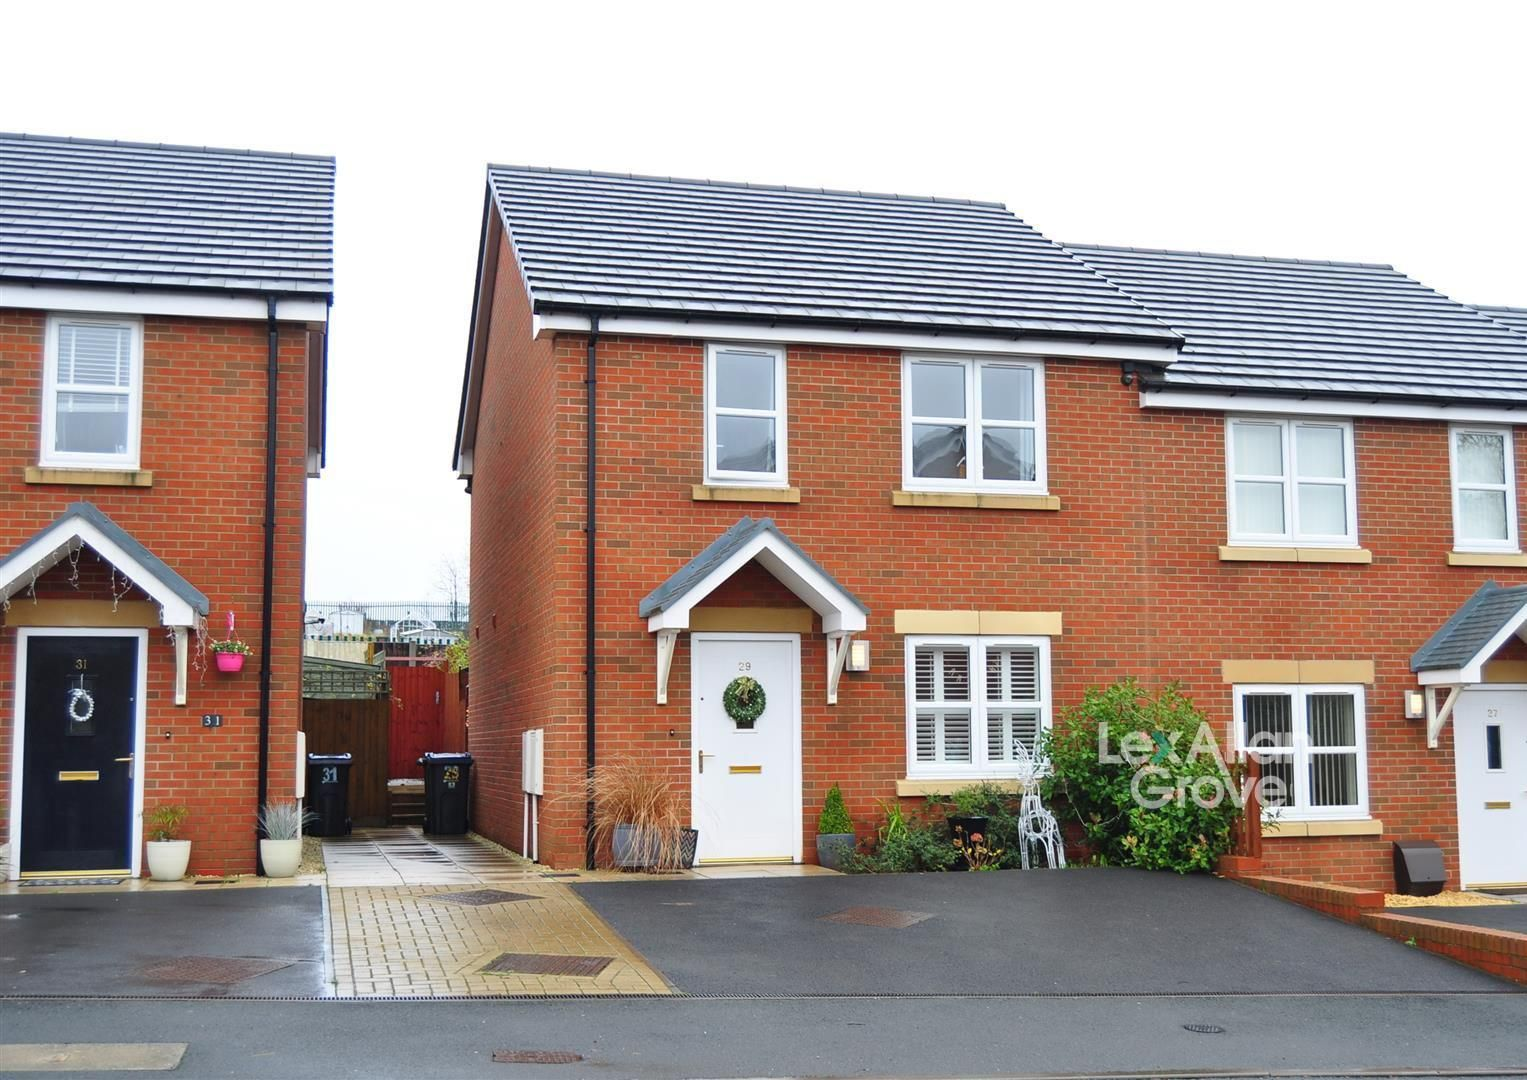 3 bed end-of-terrace for sale, B32